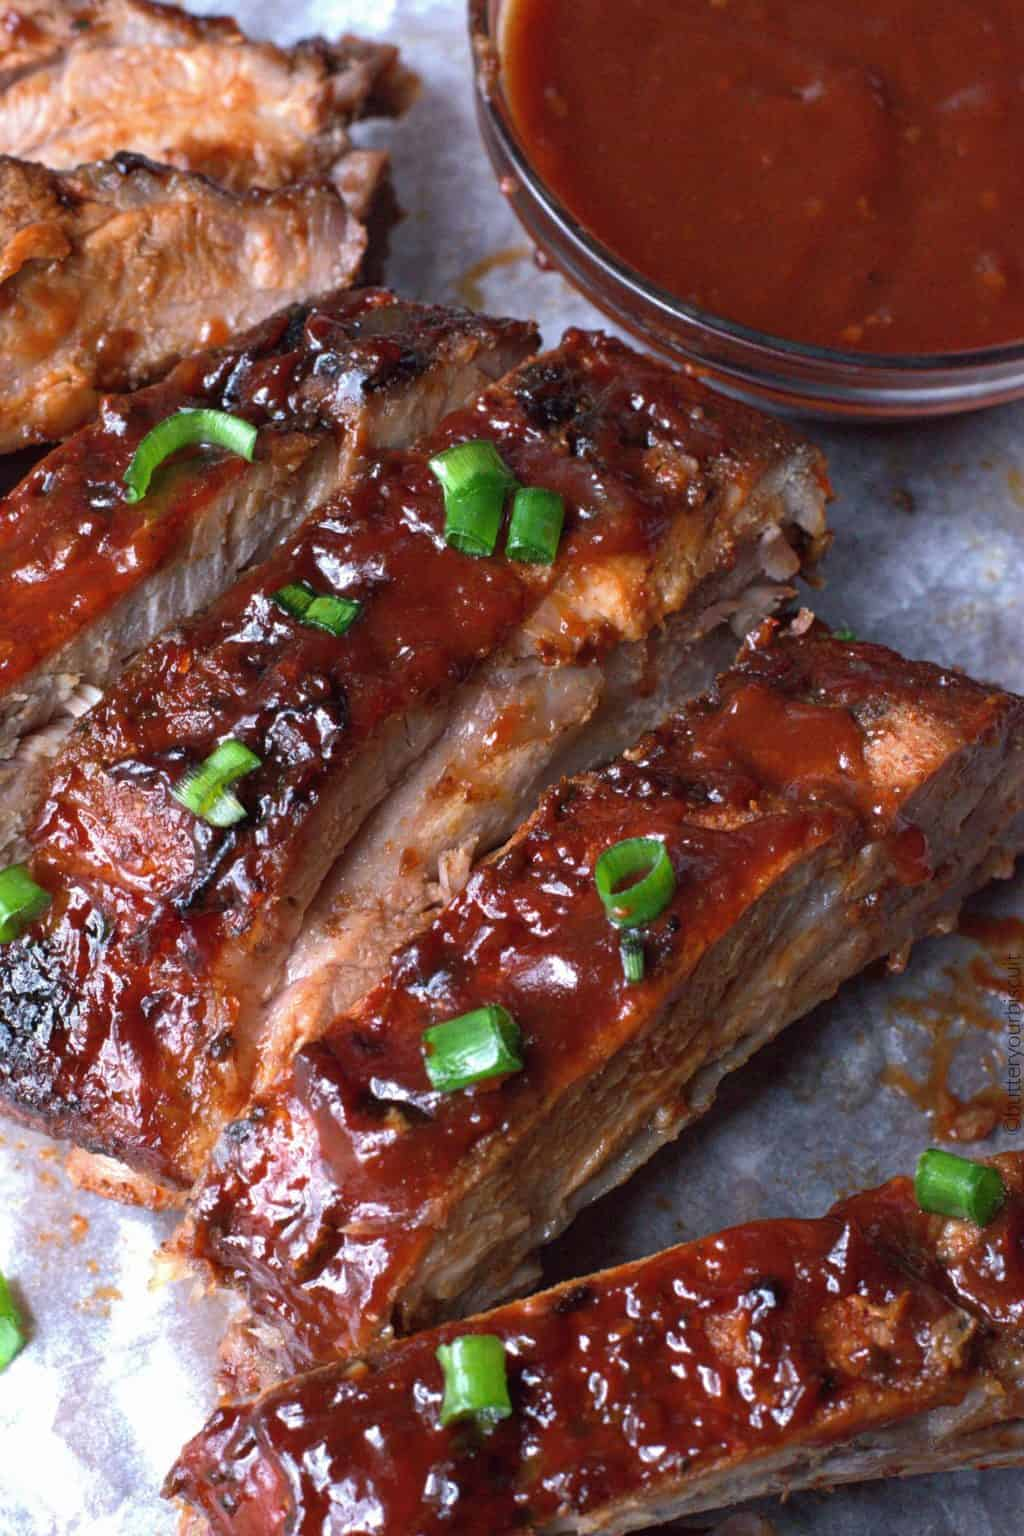 How to make easy pork ribs in the oven